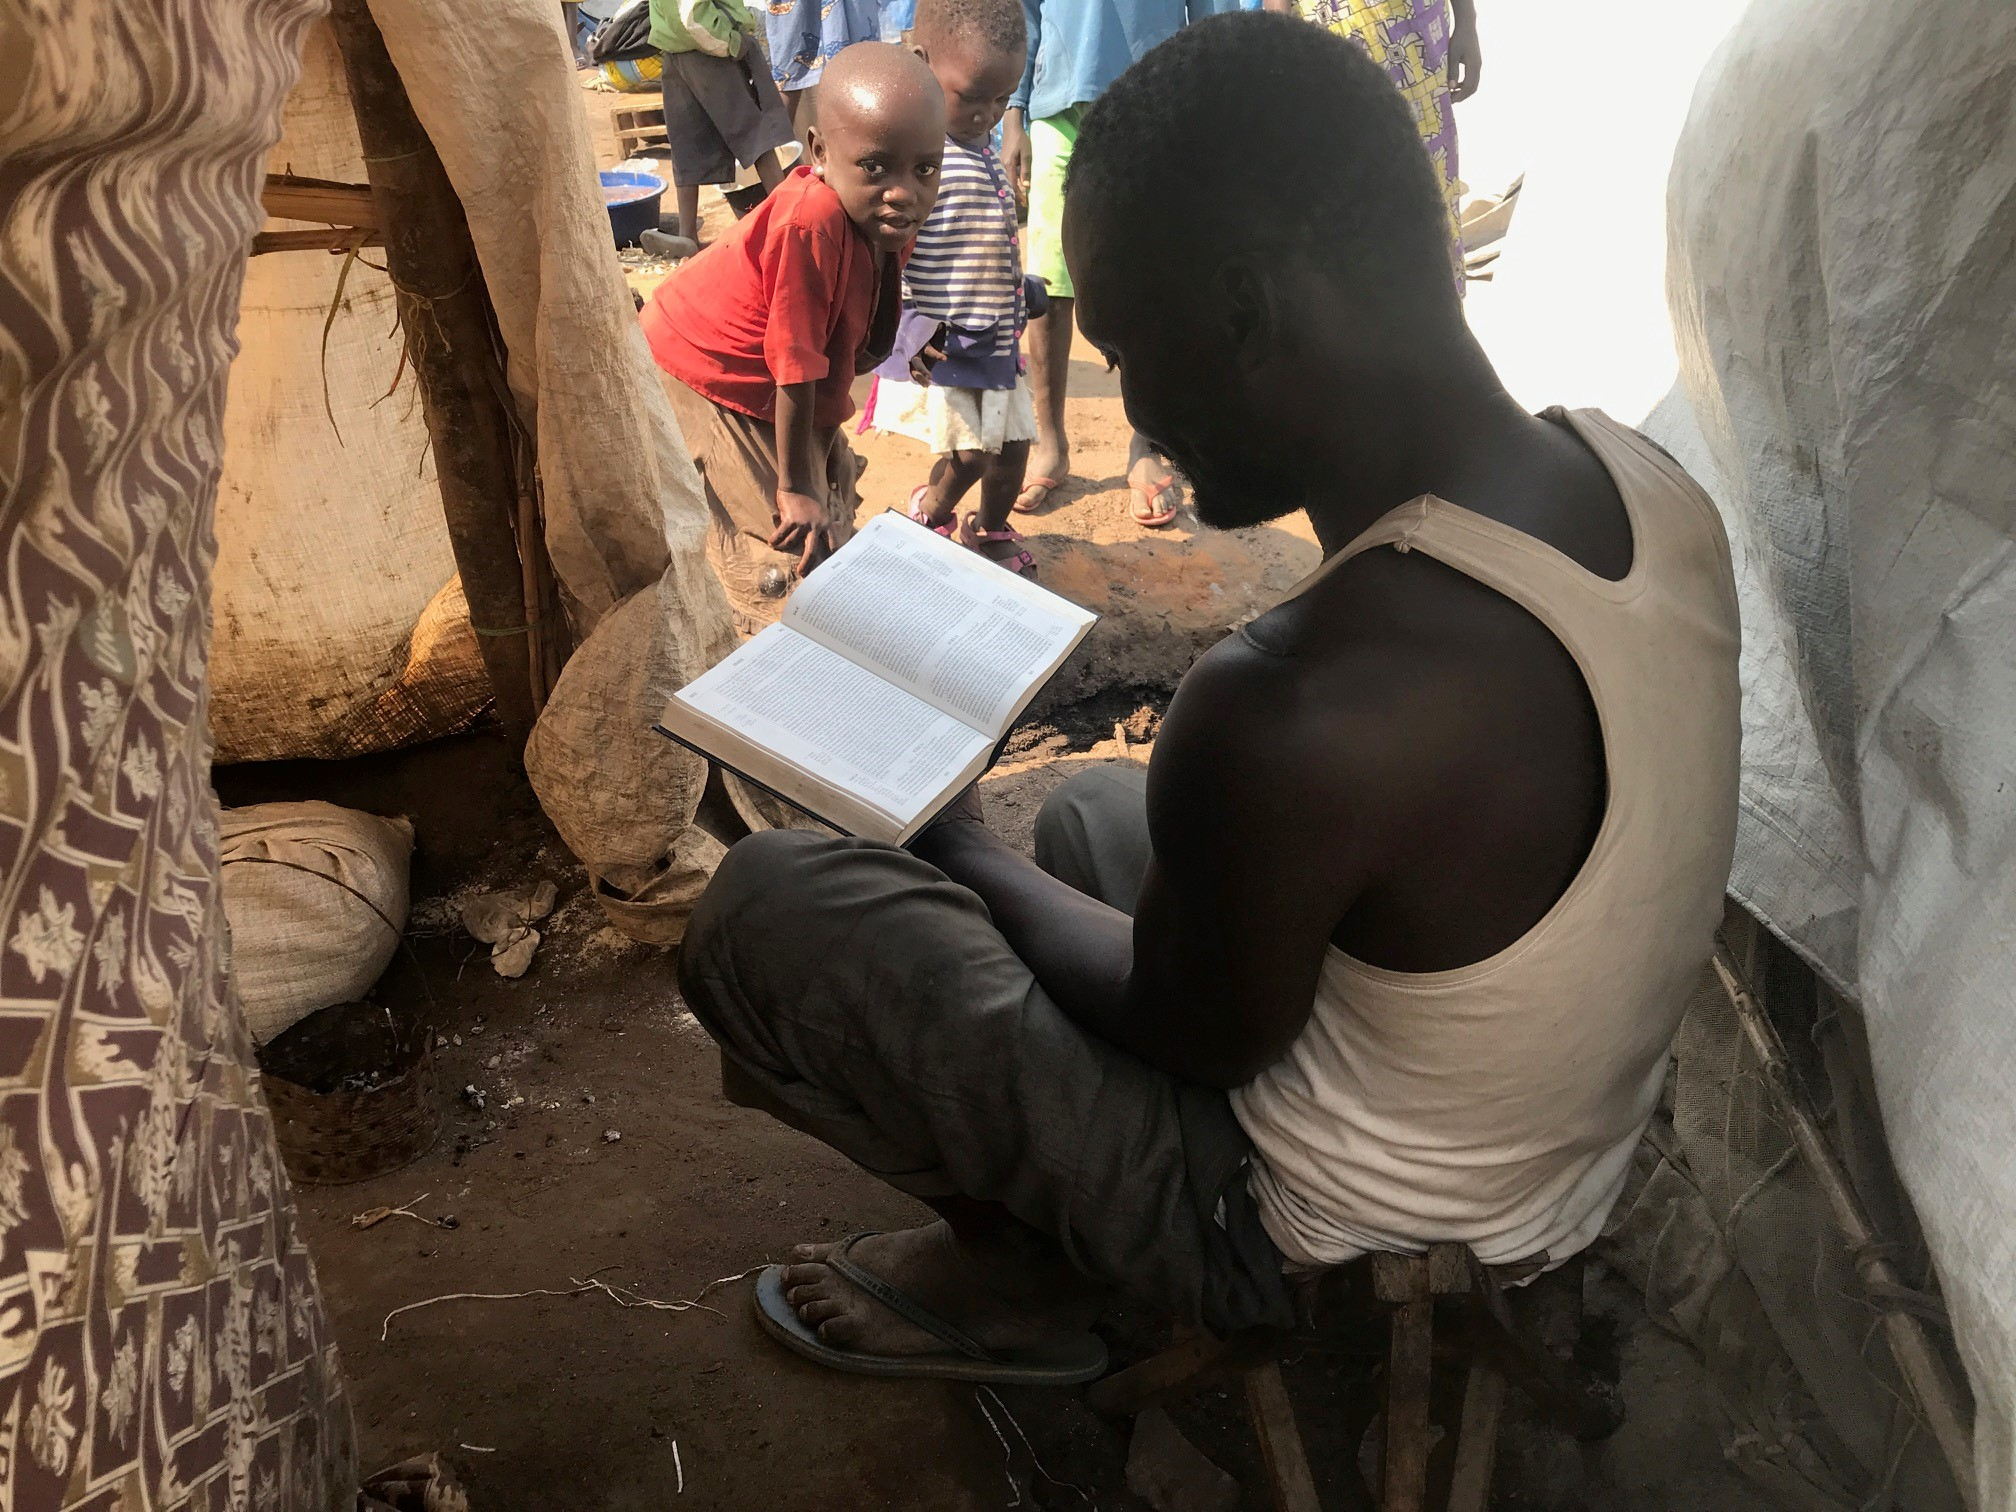 Congolese people displaced by violence embrace the Gospel in refugee camp